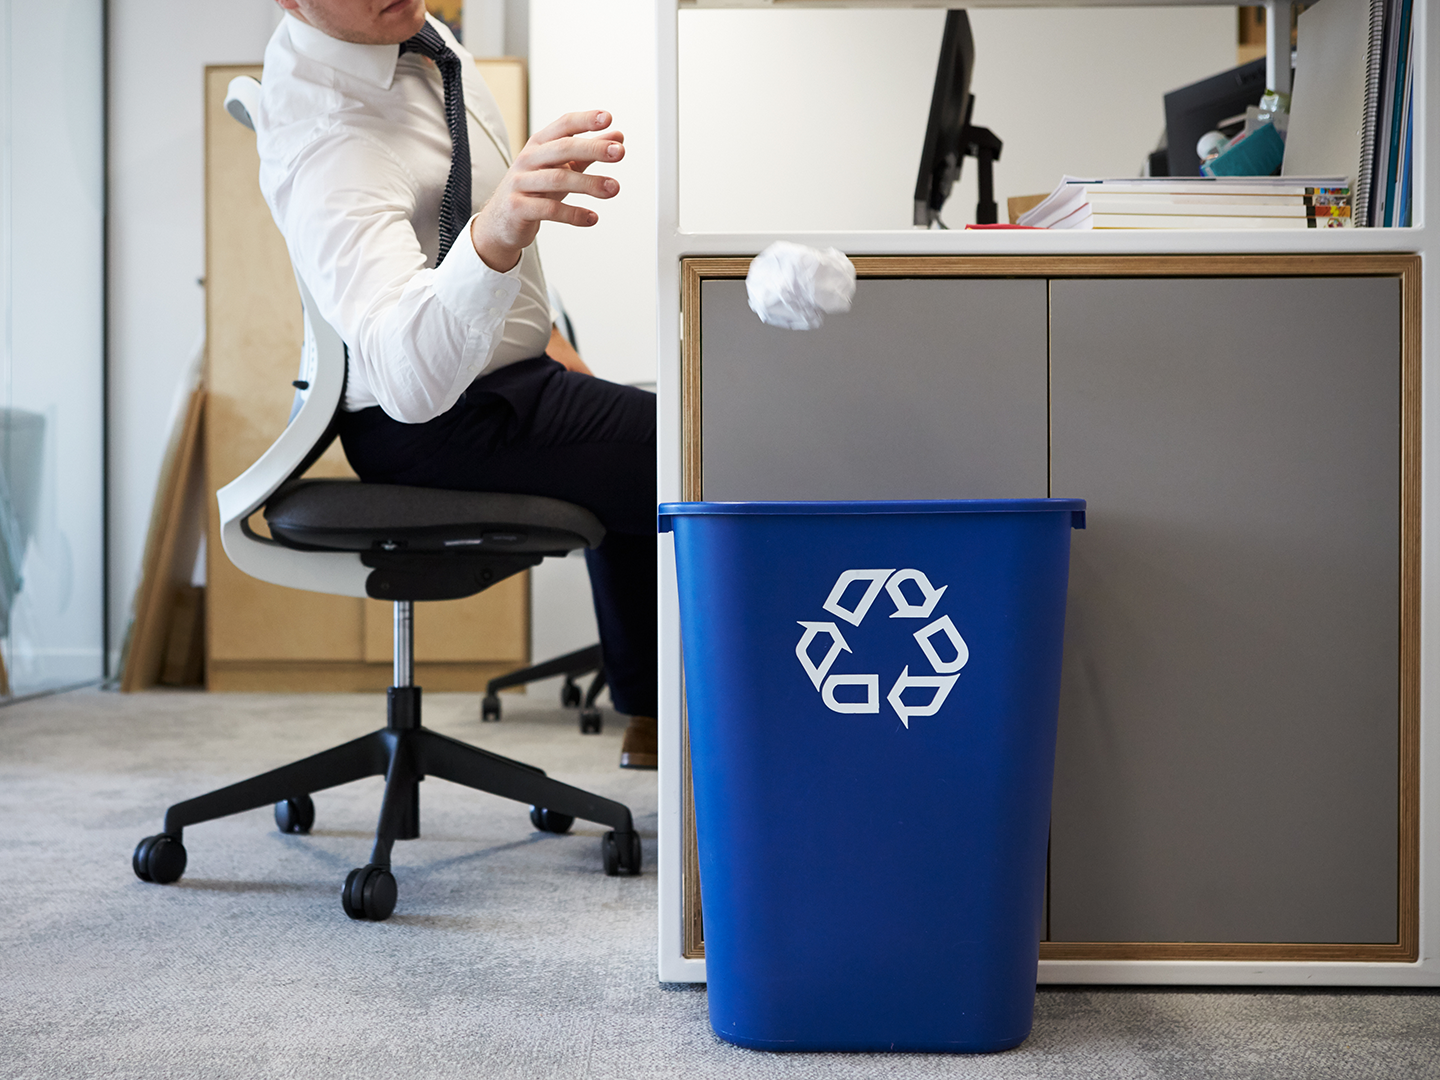 paper recycling rates are high